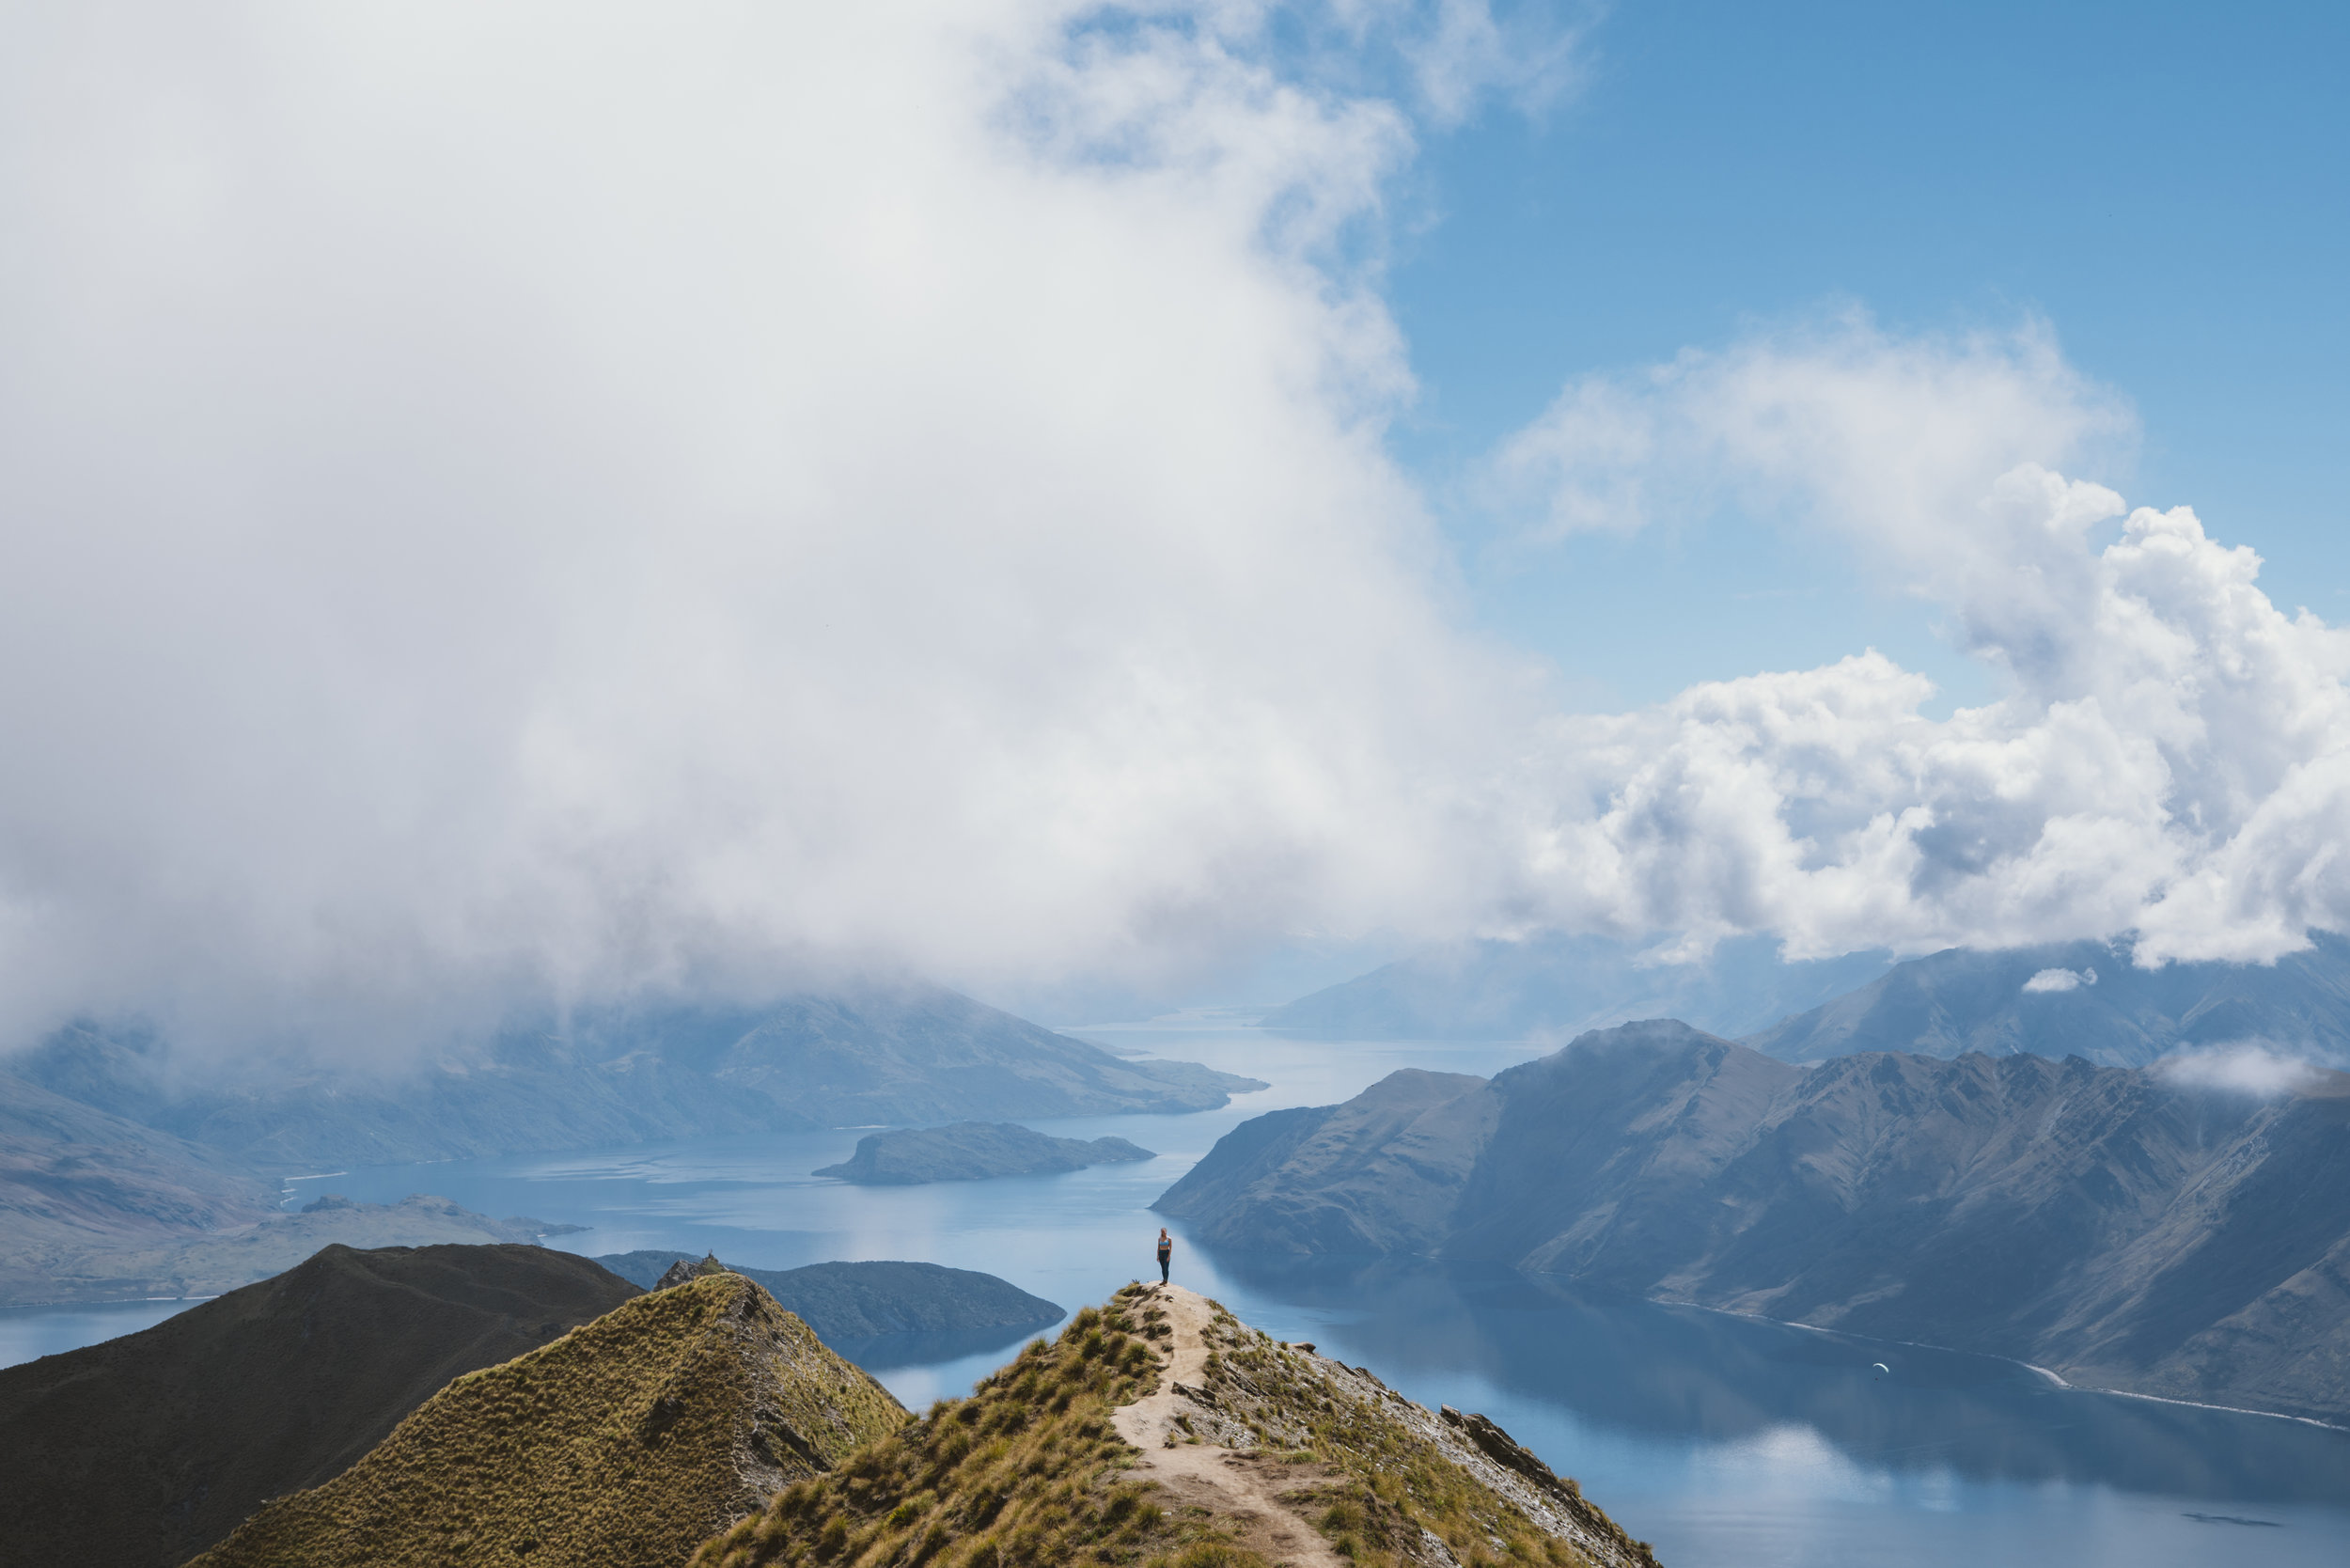 Best Photograph Spot at Roy's Peak in New Zealand